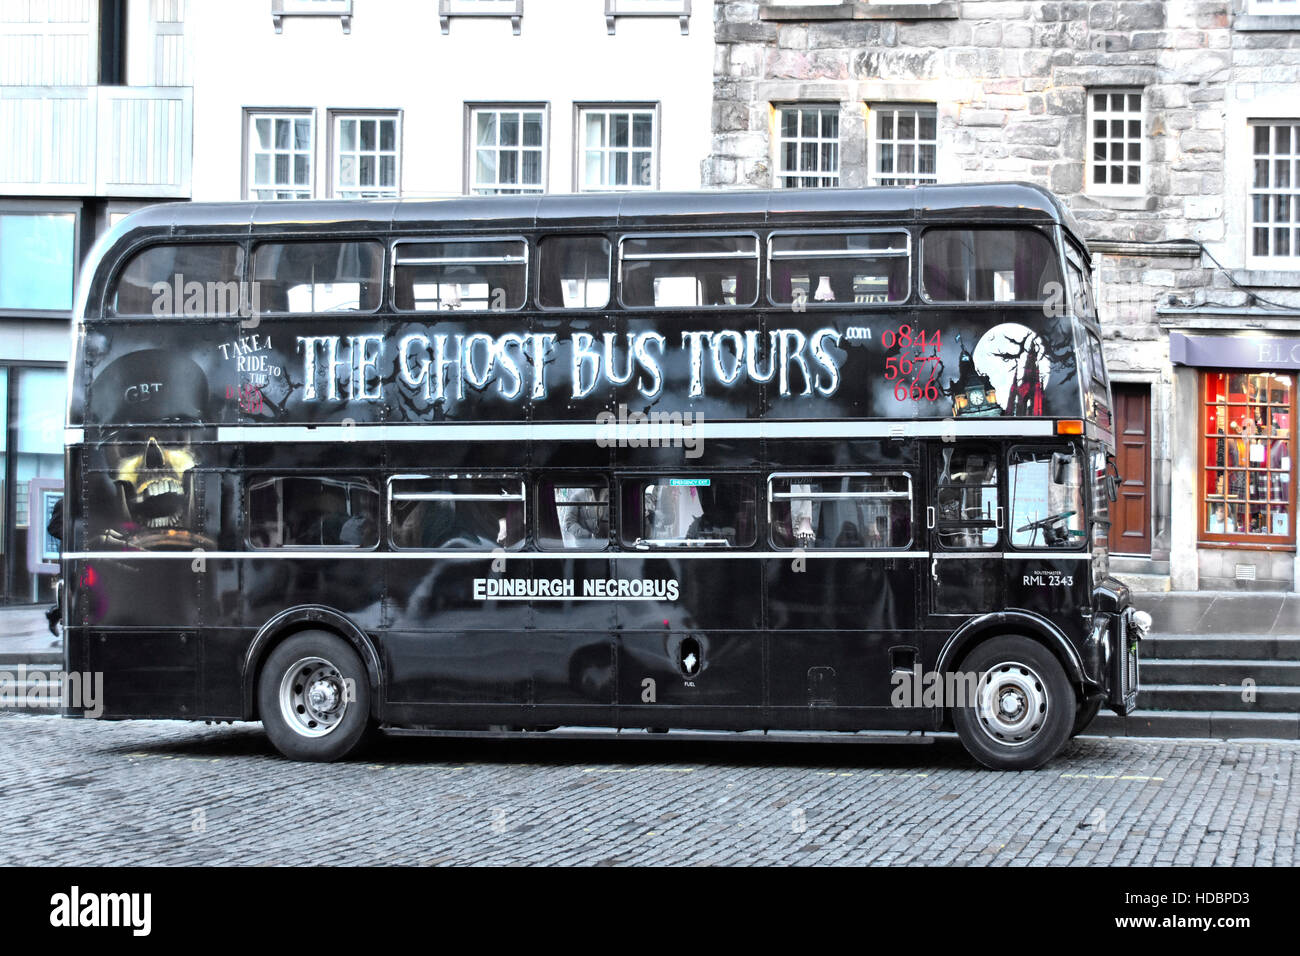 Scottish Ghost Bus Tours parked in Lawnmarket Edinburgh Scotland uk refurbished London Routemaster double decker - Stock Image